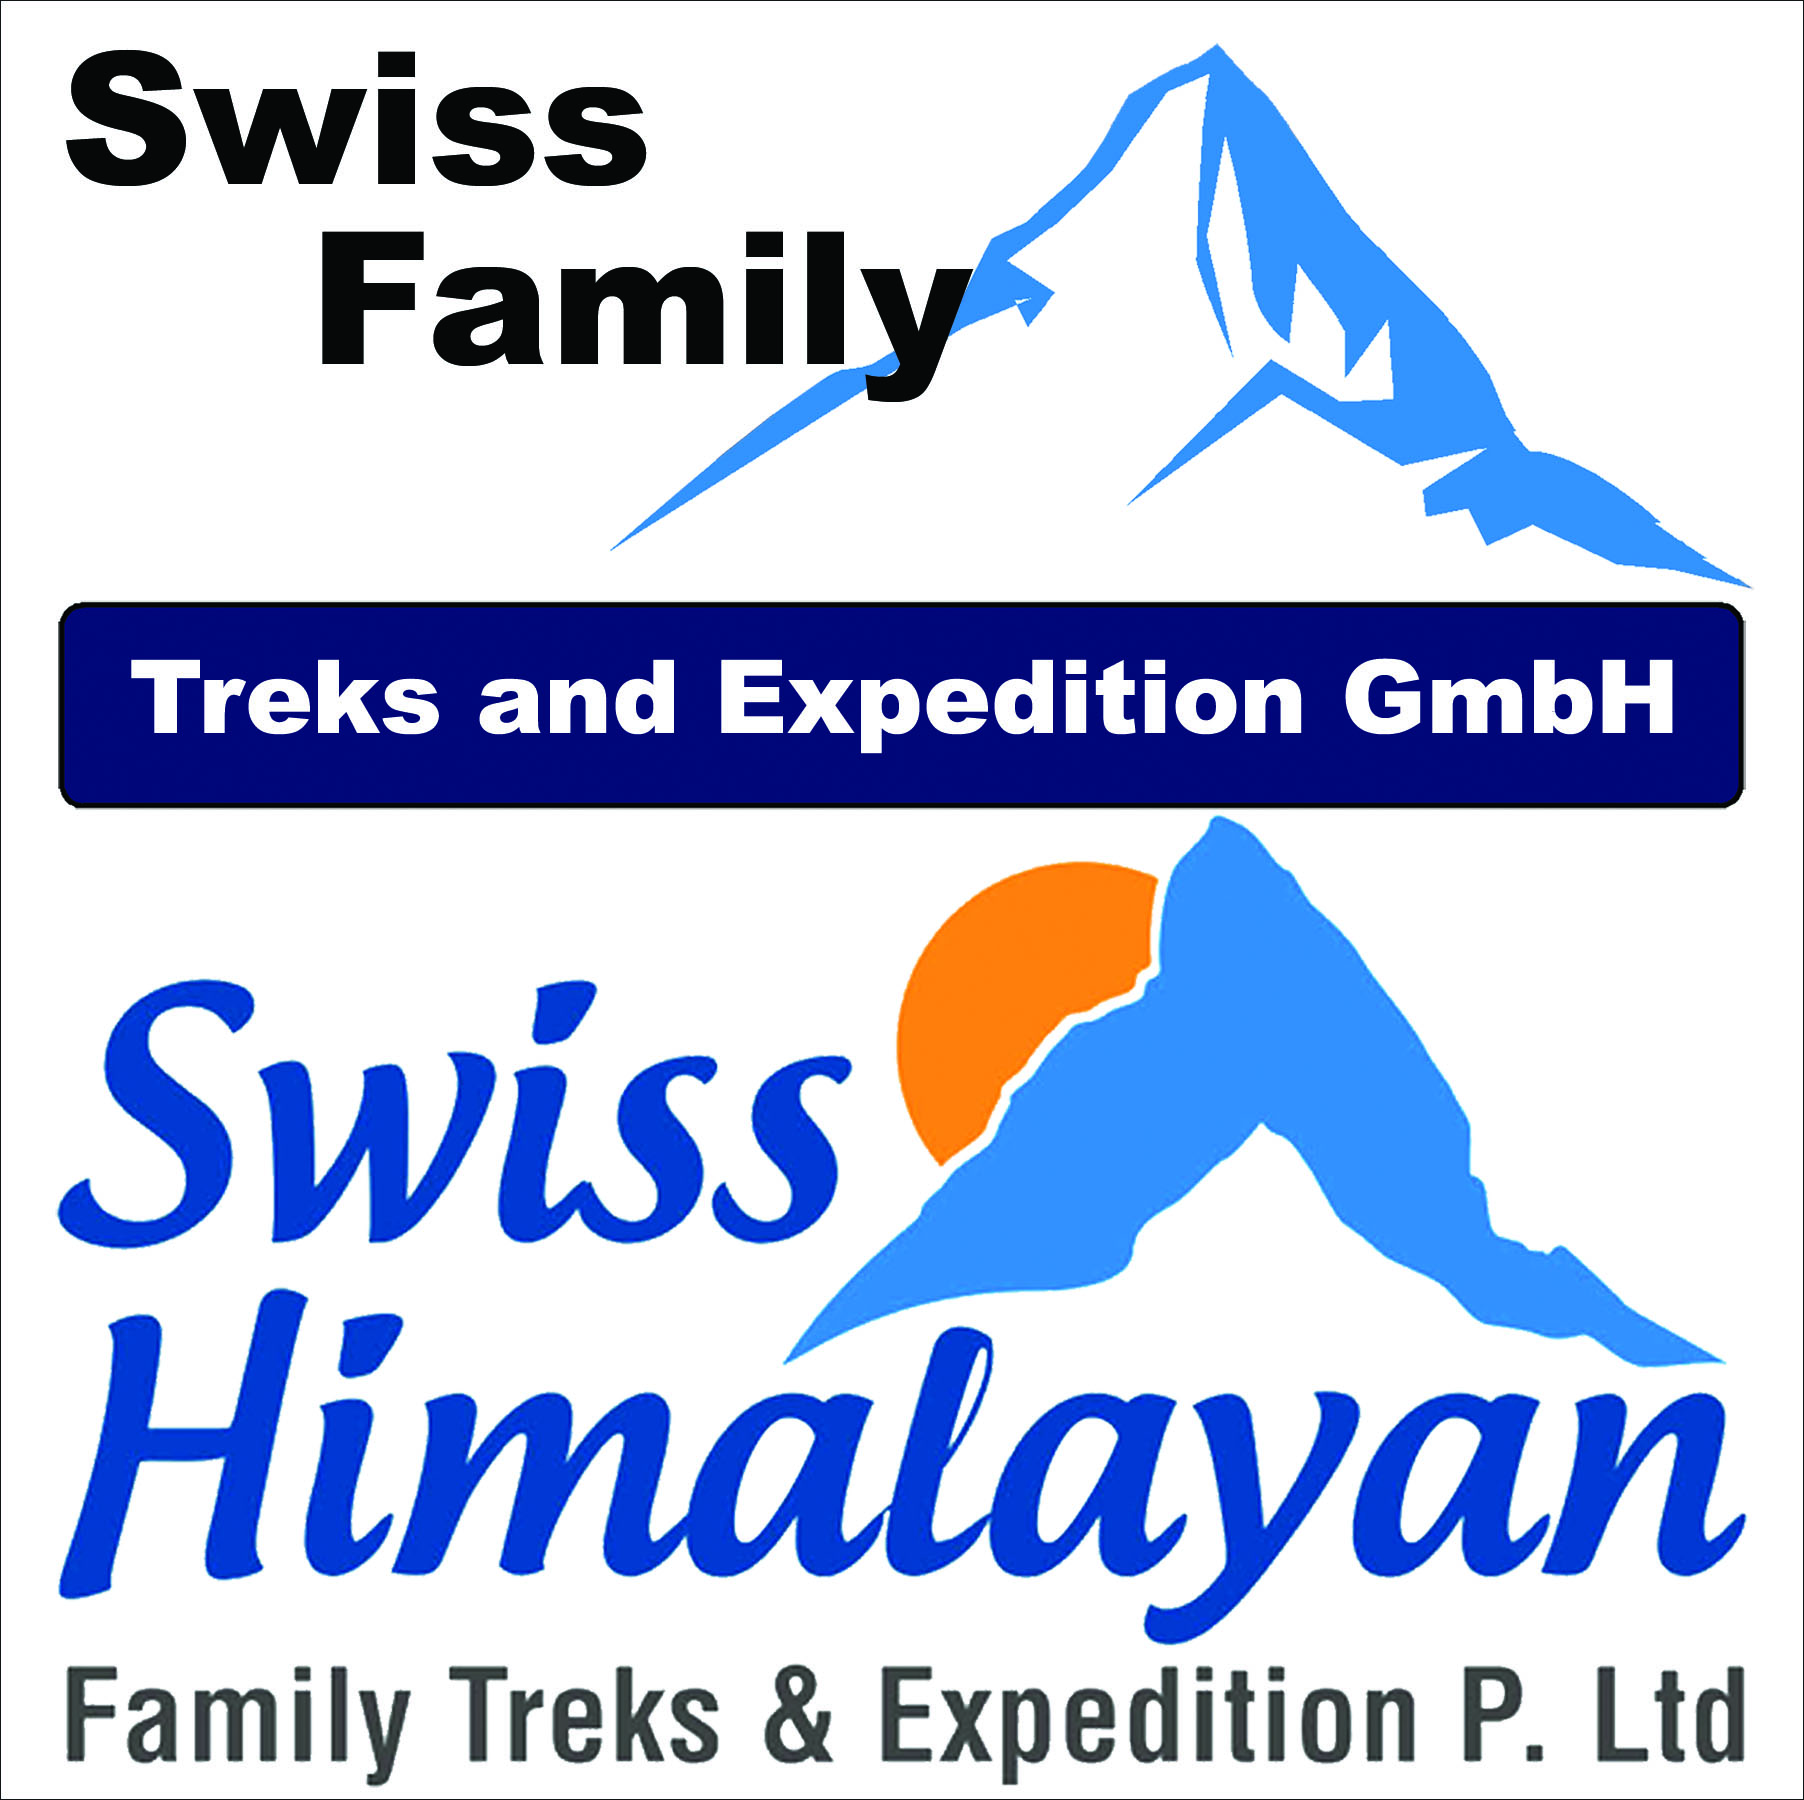 Swiss Family Treks & Expedition GmbH, in Partnership with Swiss Himalayan Family Treks & Expedition P. Ltd